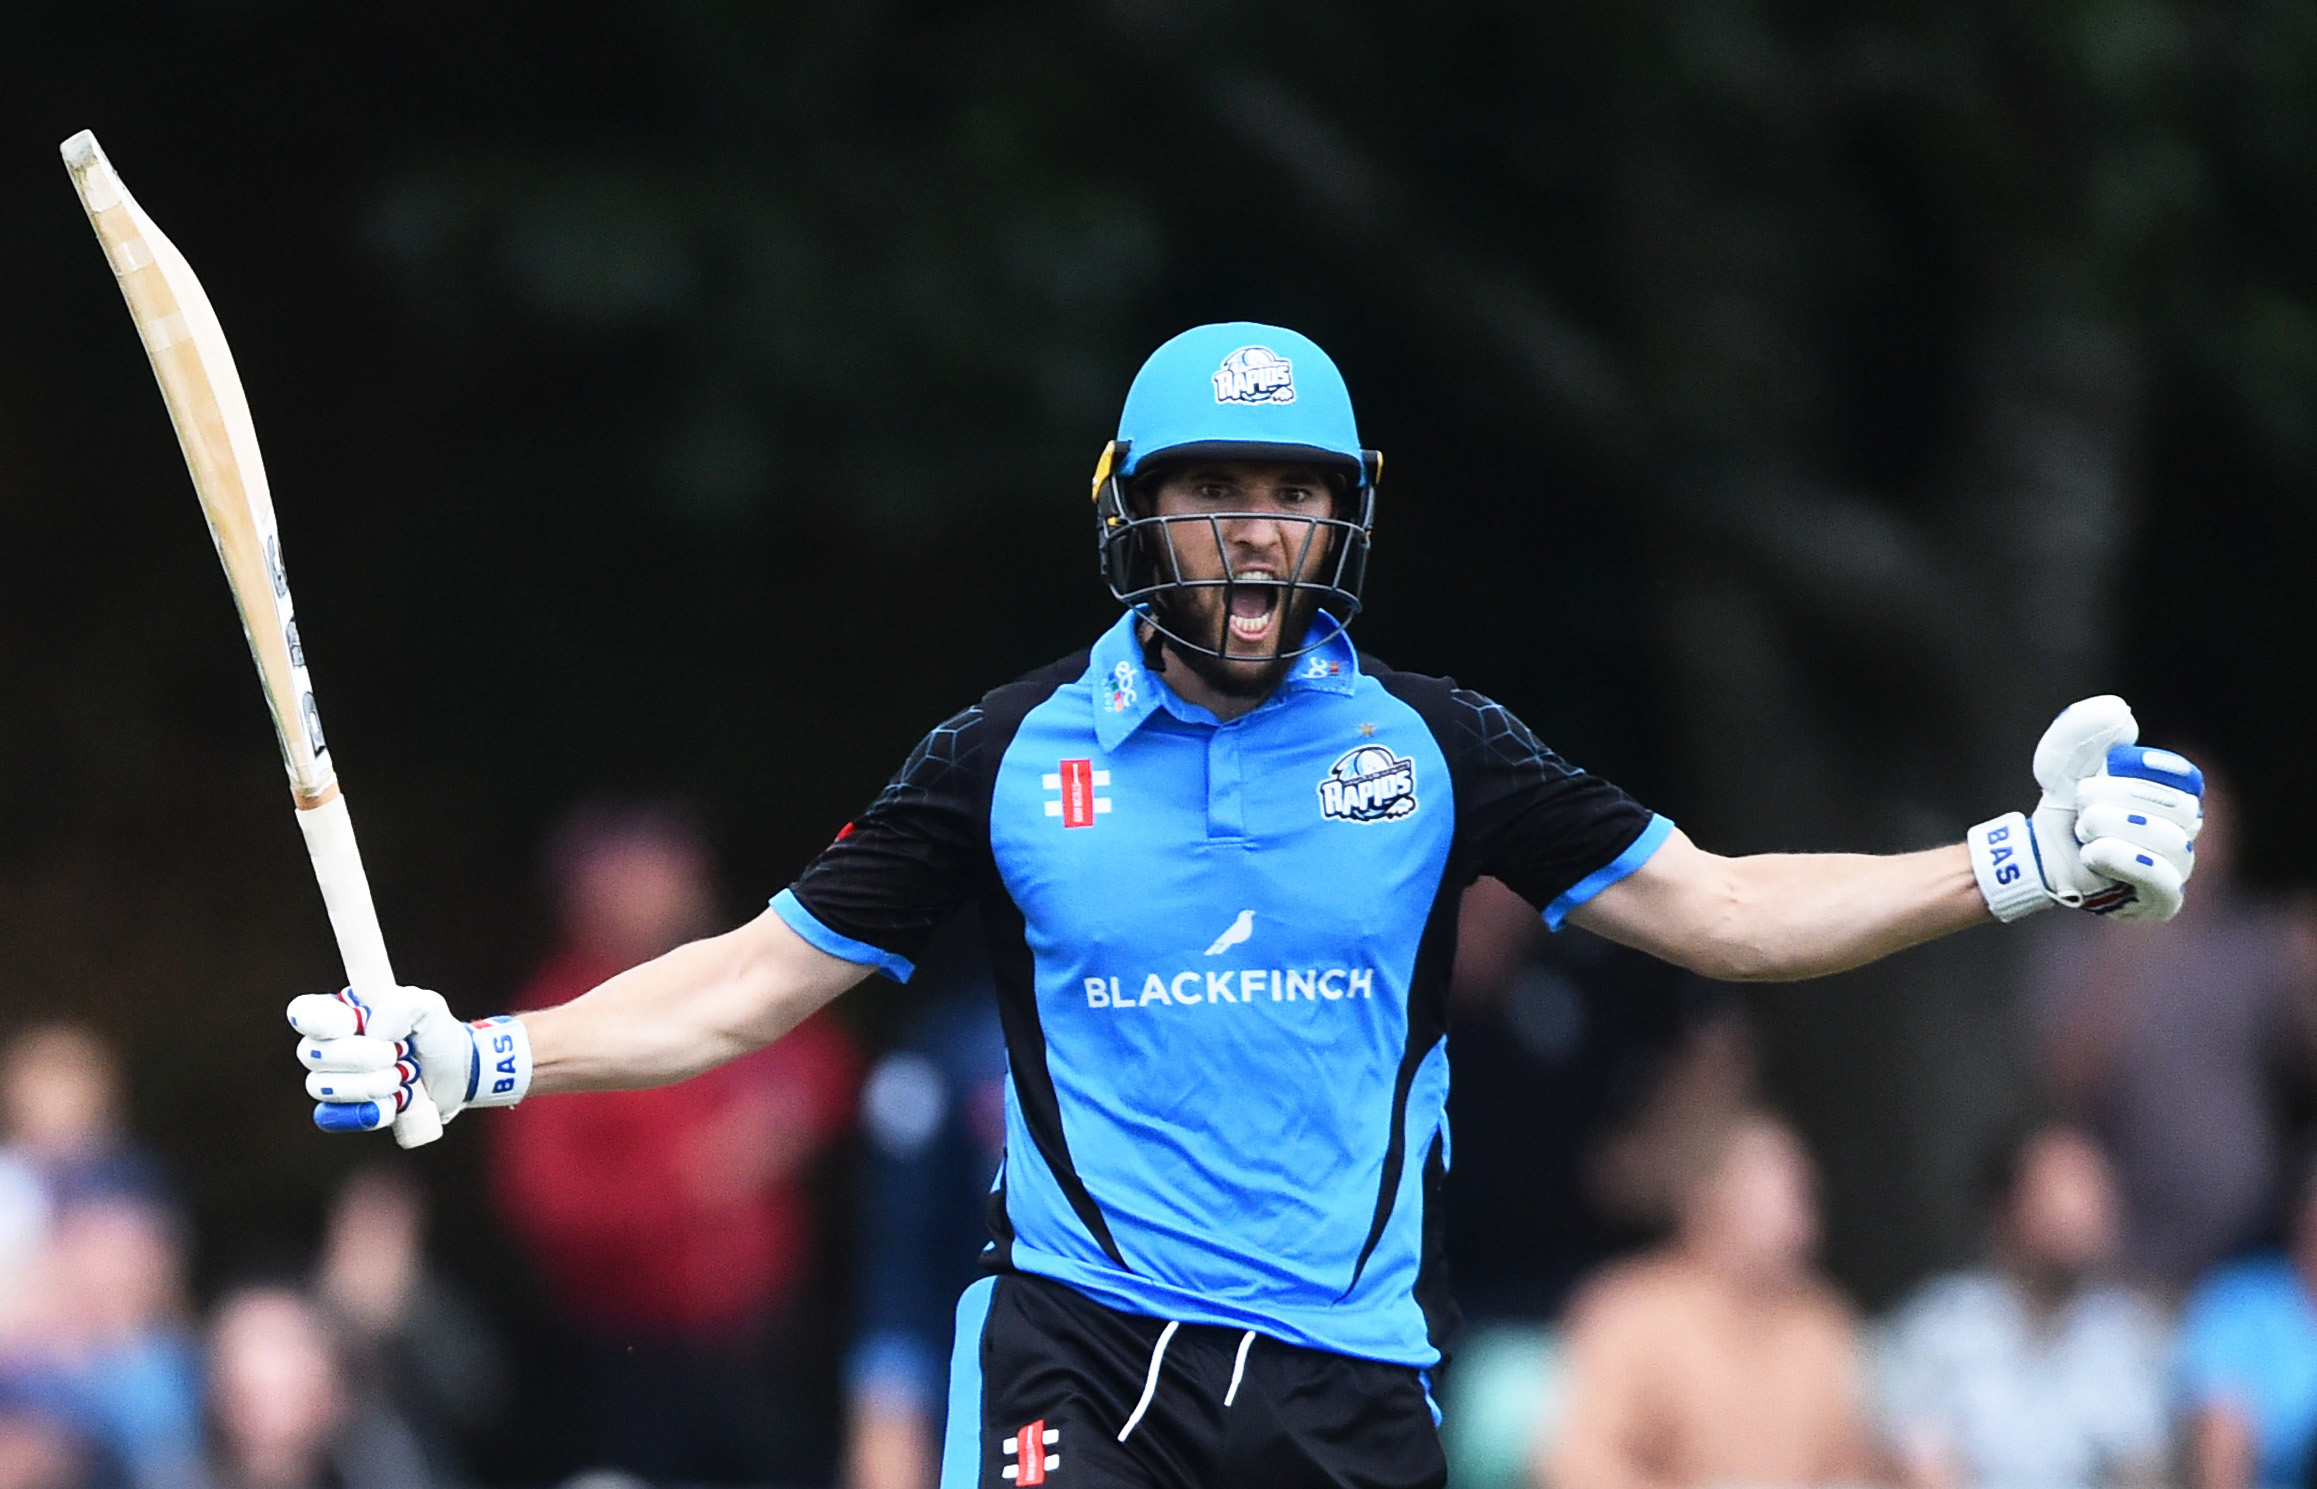 31 July 2019: Wayne Parnell celebrates scoring the winning runs for the Worcestershire Rapids in a Vitality Blast match against the Derbyshire Falcons at New Road in Worcester, England. (Photograph by Nathan Stirk/Getty Images)